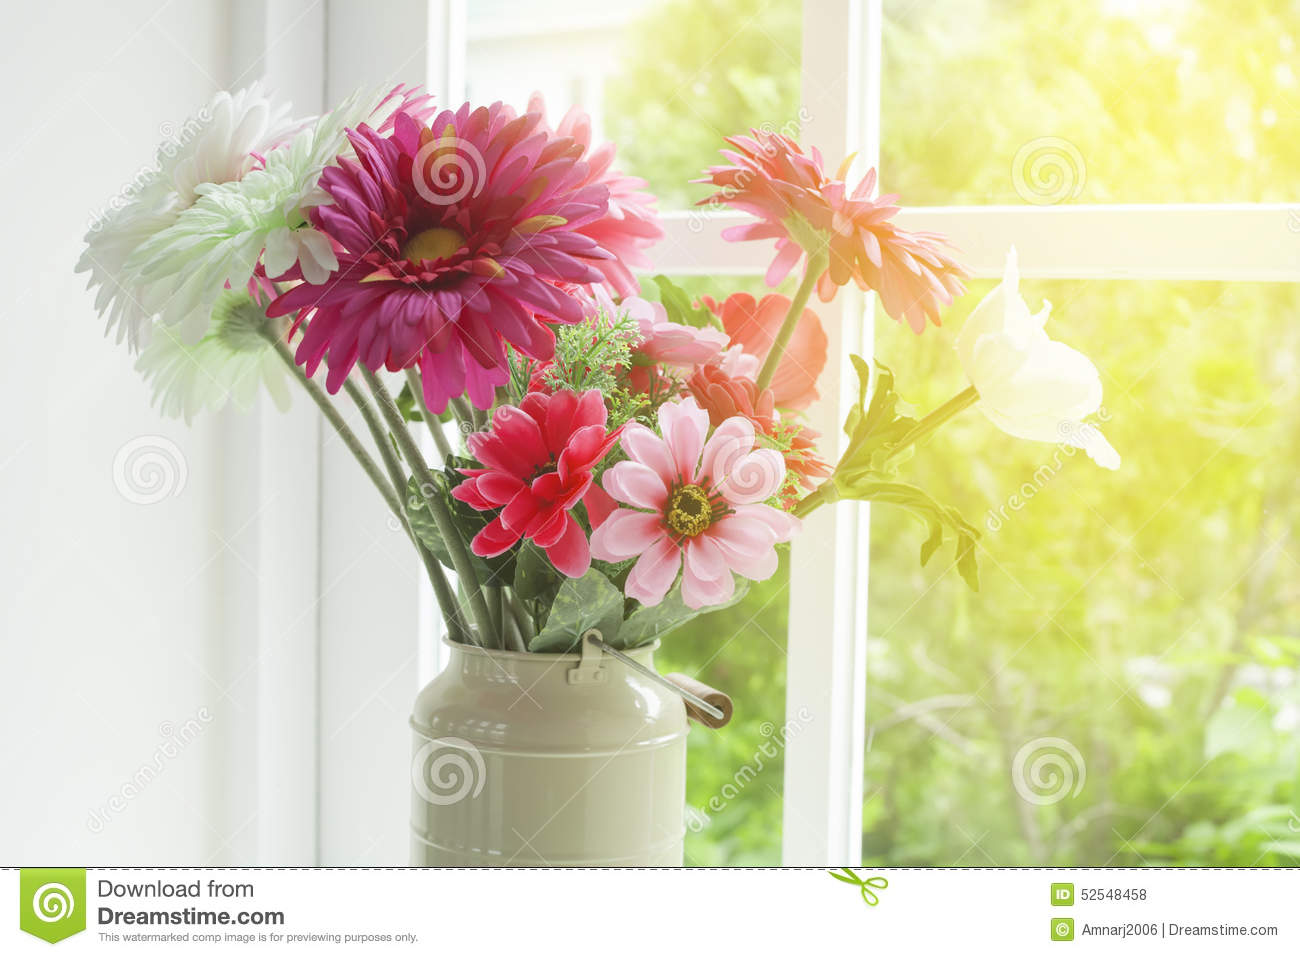 Flowers in glass vase stock photo image of interior 52548458 flowers in glass vase reviewsmspy